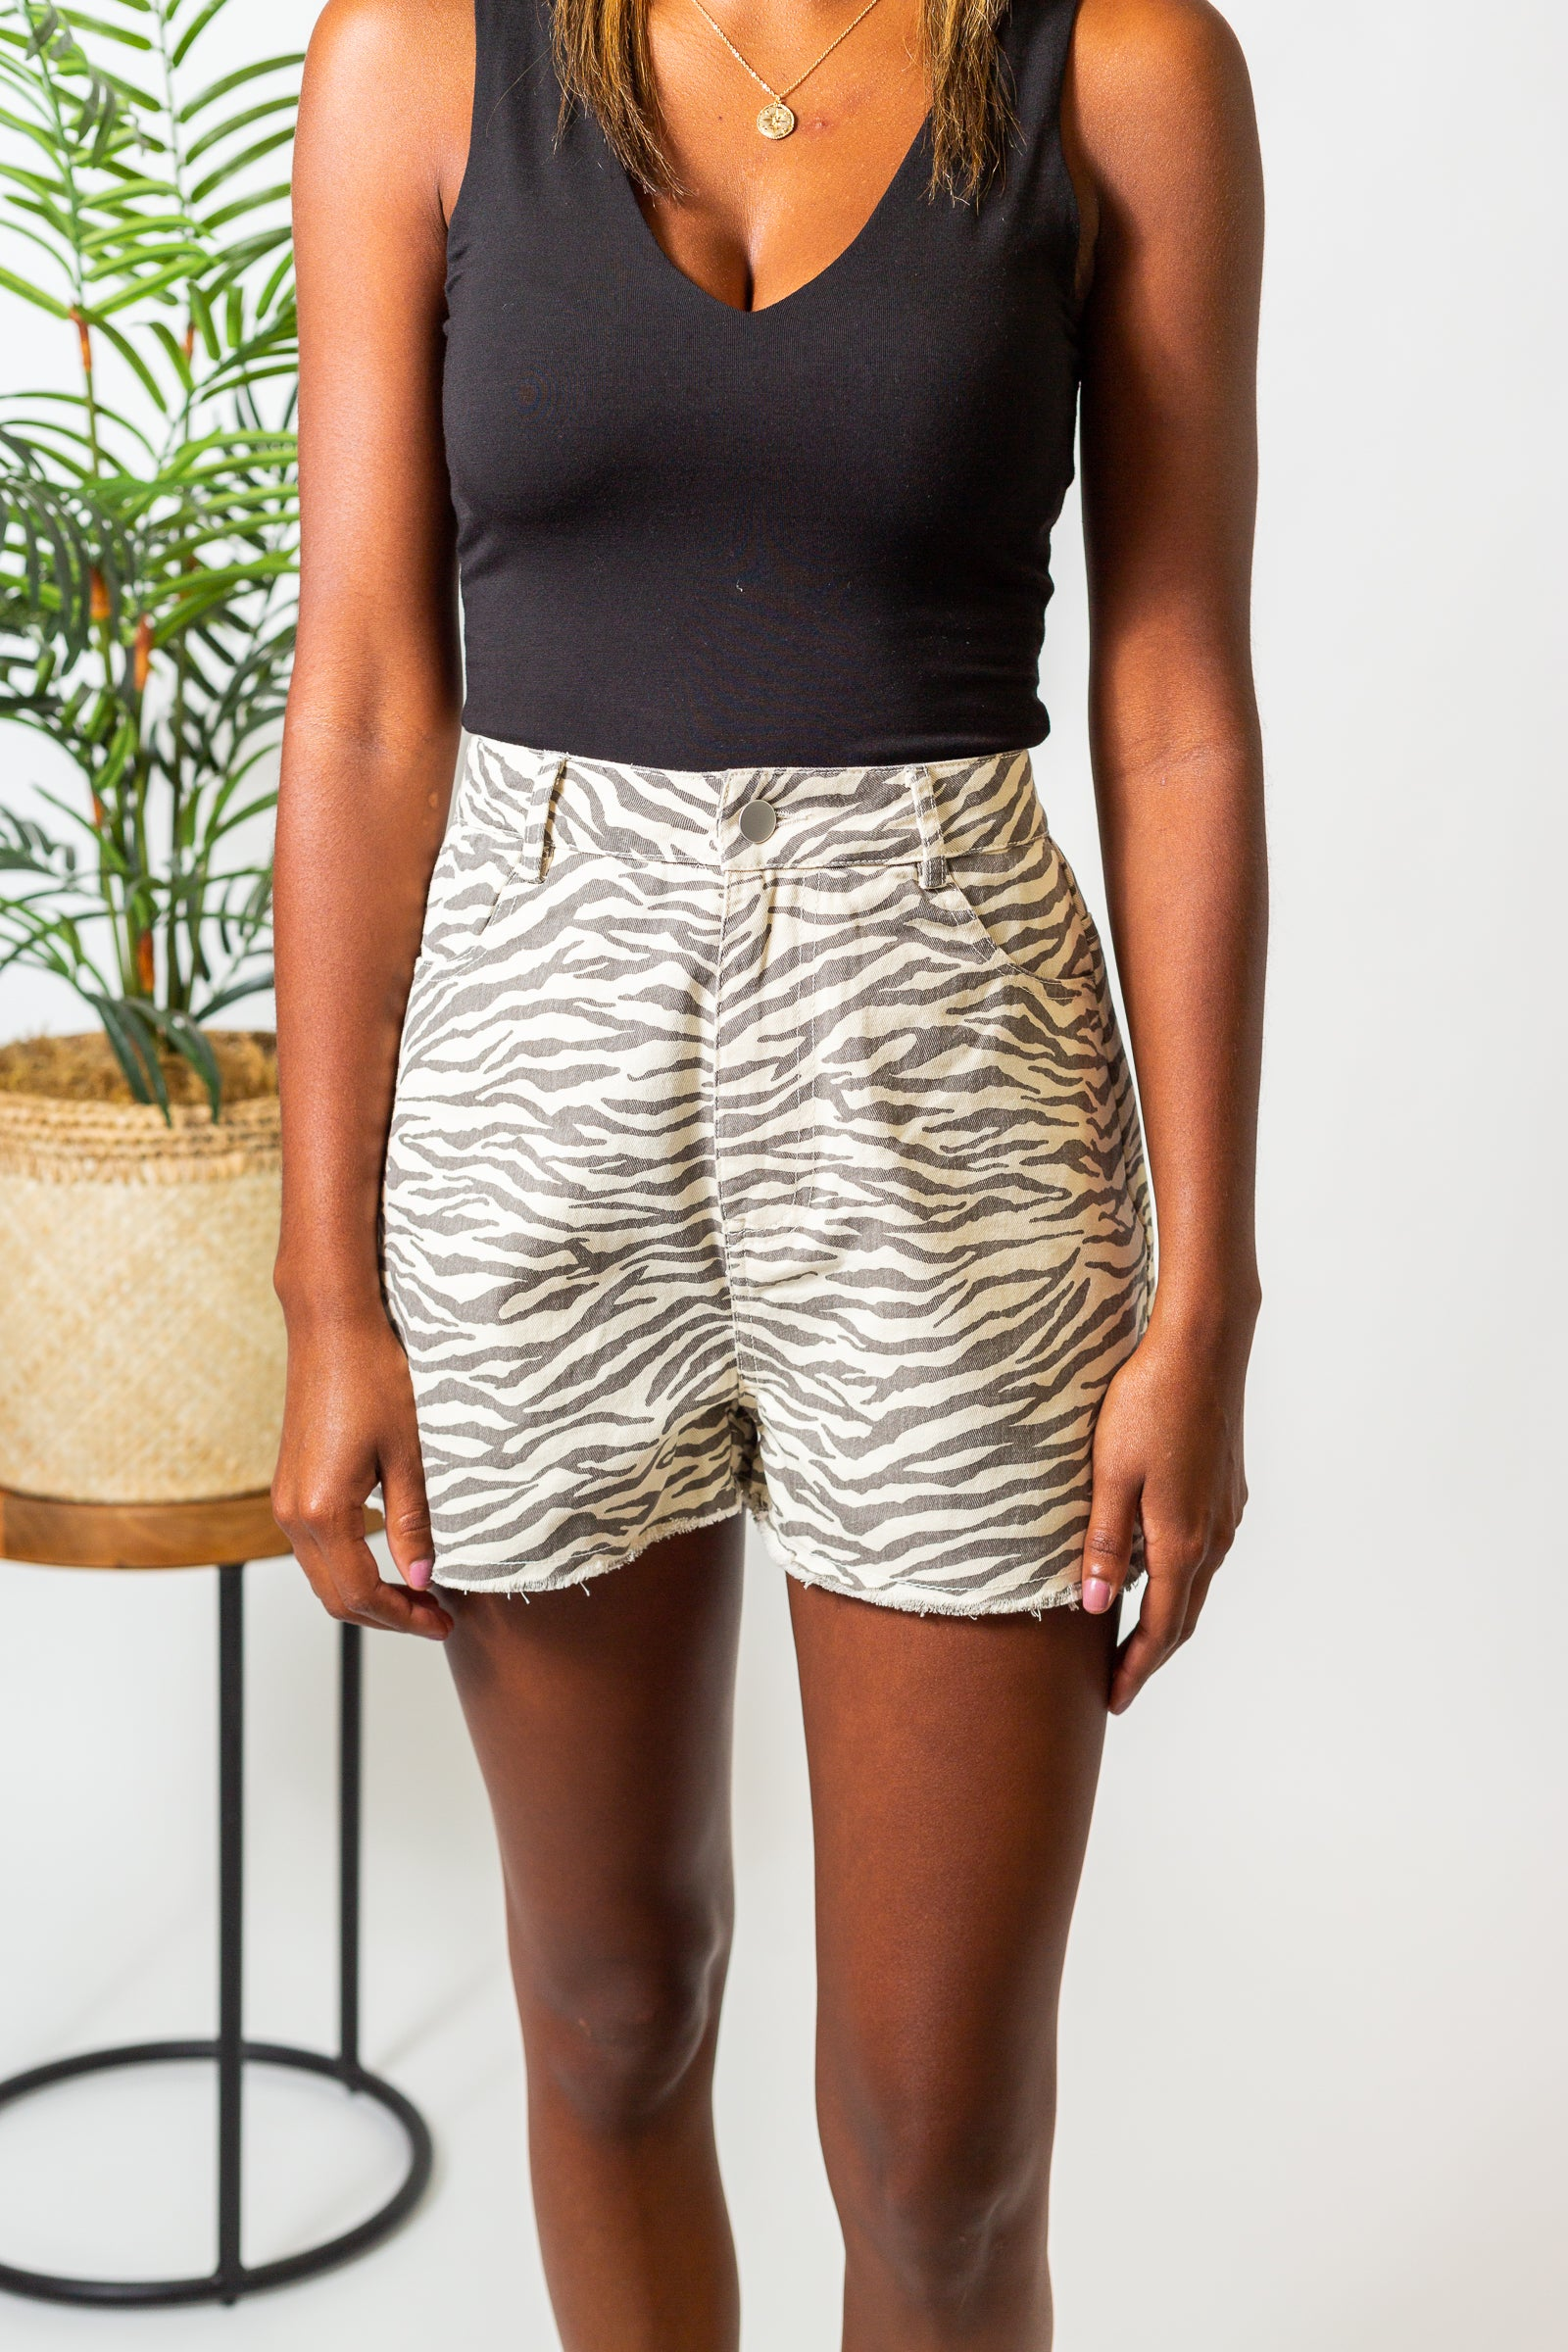 These zebra-striped shorts have a fitted waistband with belt loops and lead into a zipper fly and a traditional 4-pocket structure before going into loose and comfortable shorts.